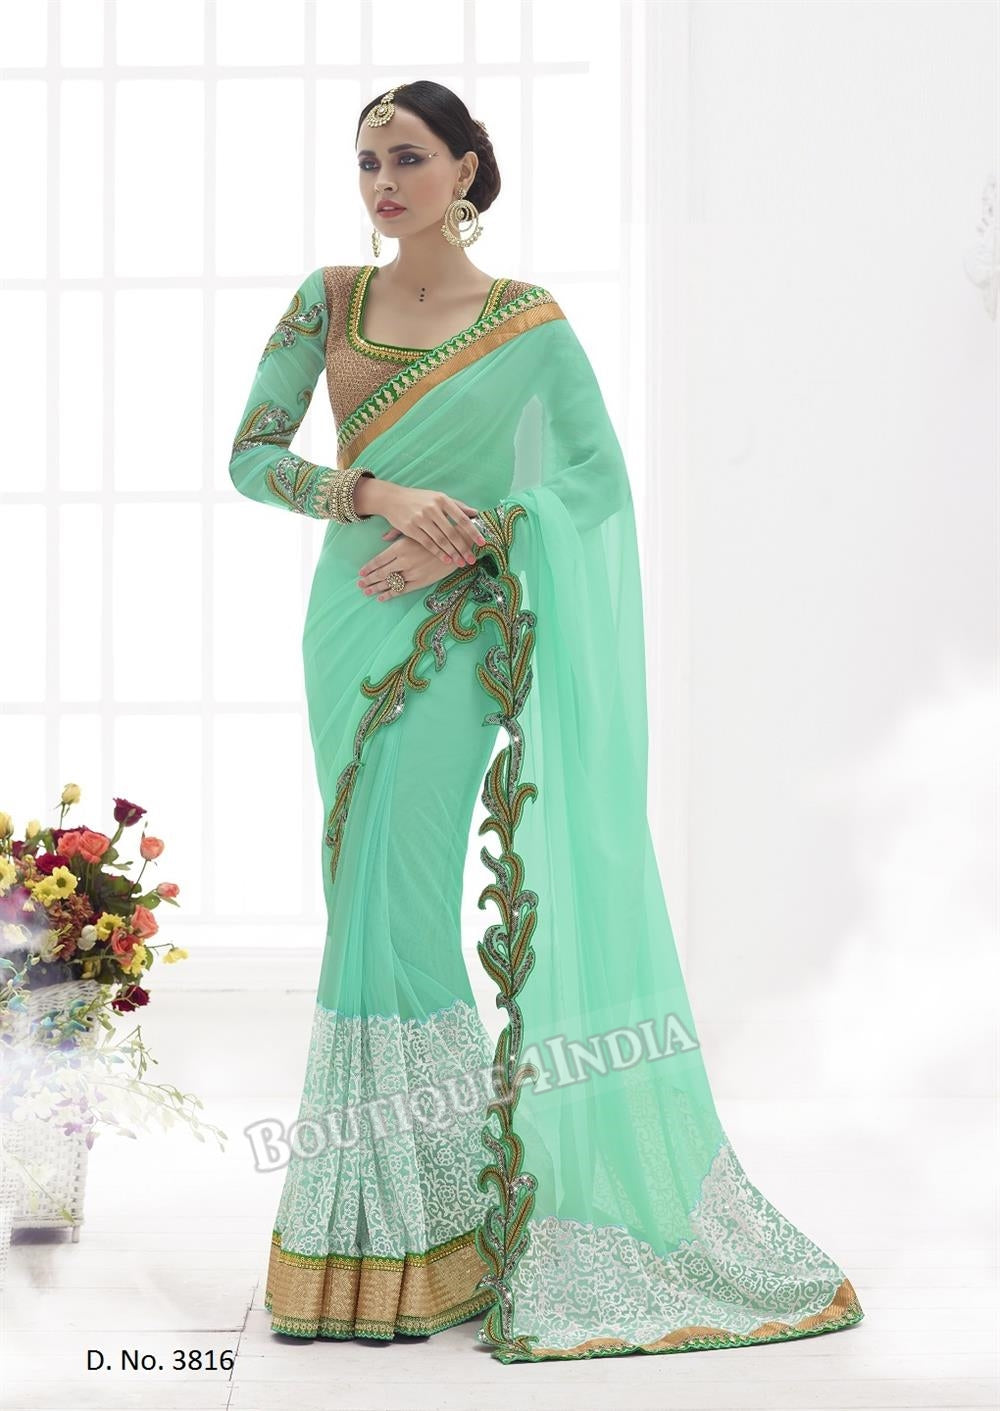 Sarees - Sea Green, white and Golden Bridal Collections